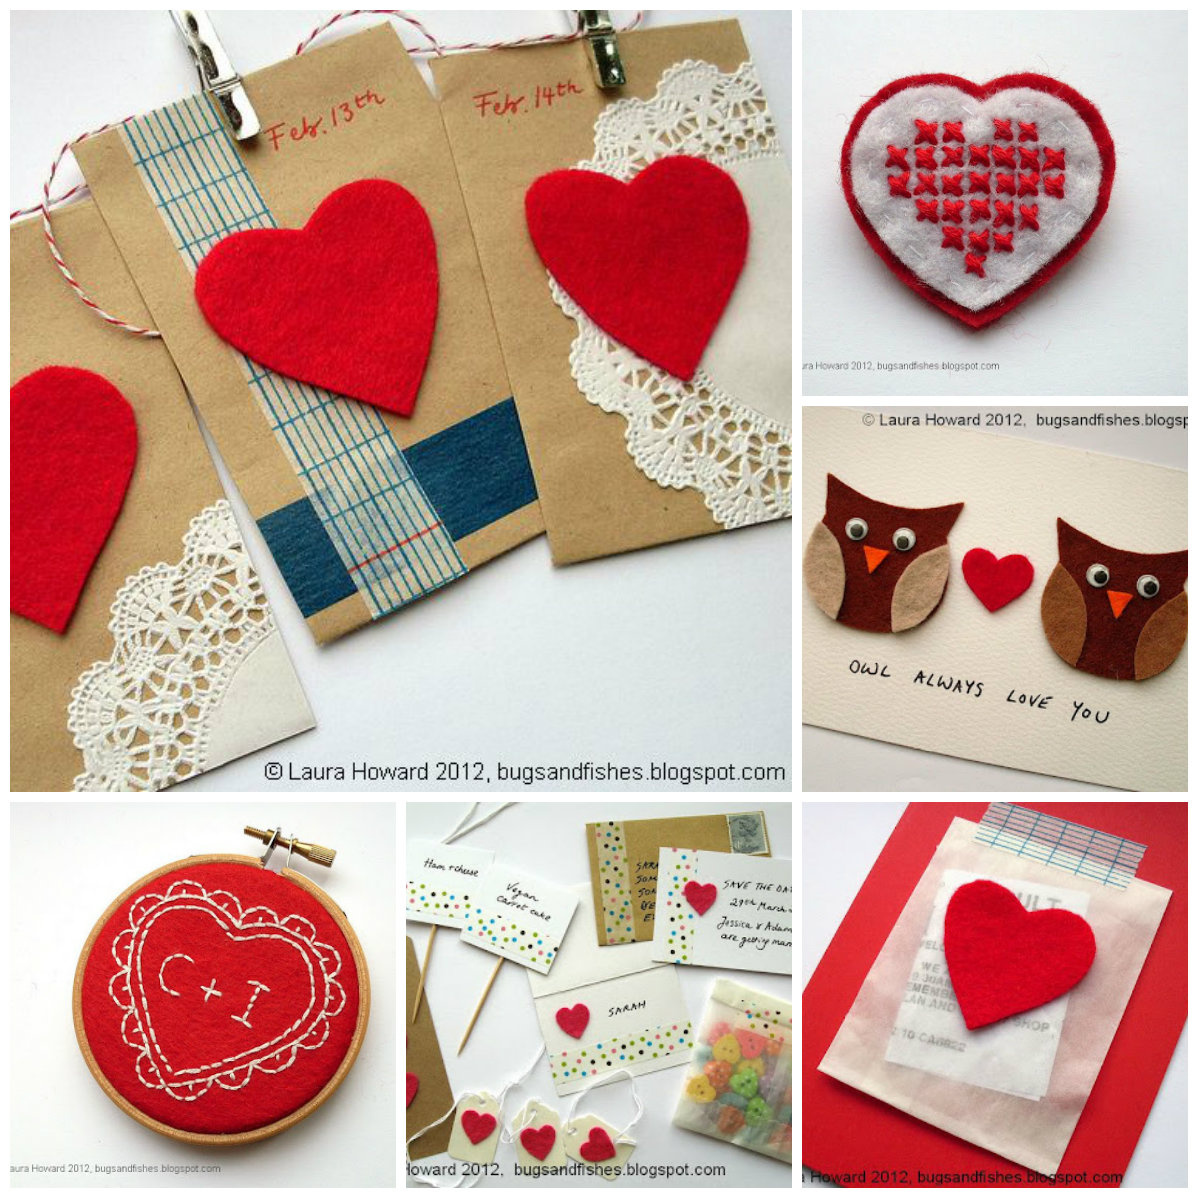 Bugs And Fishes By Lupin: Craft Ideas For Valentine's Day